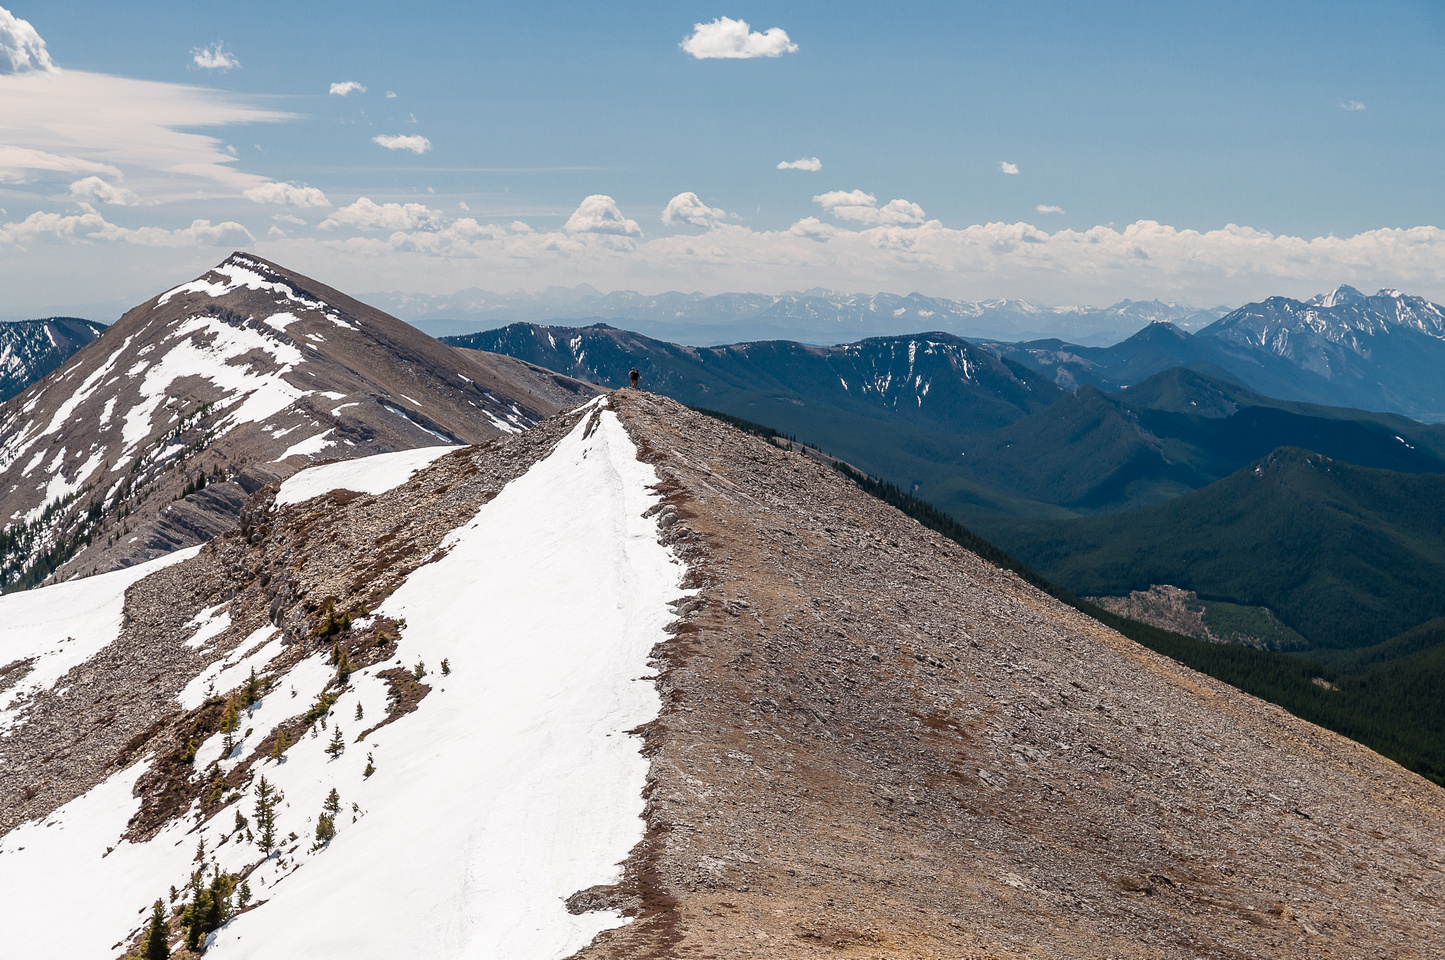 Looking back along the south ridge to Coffin.